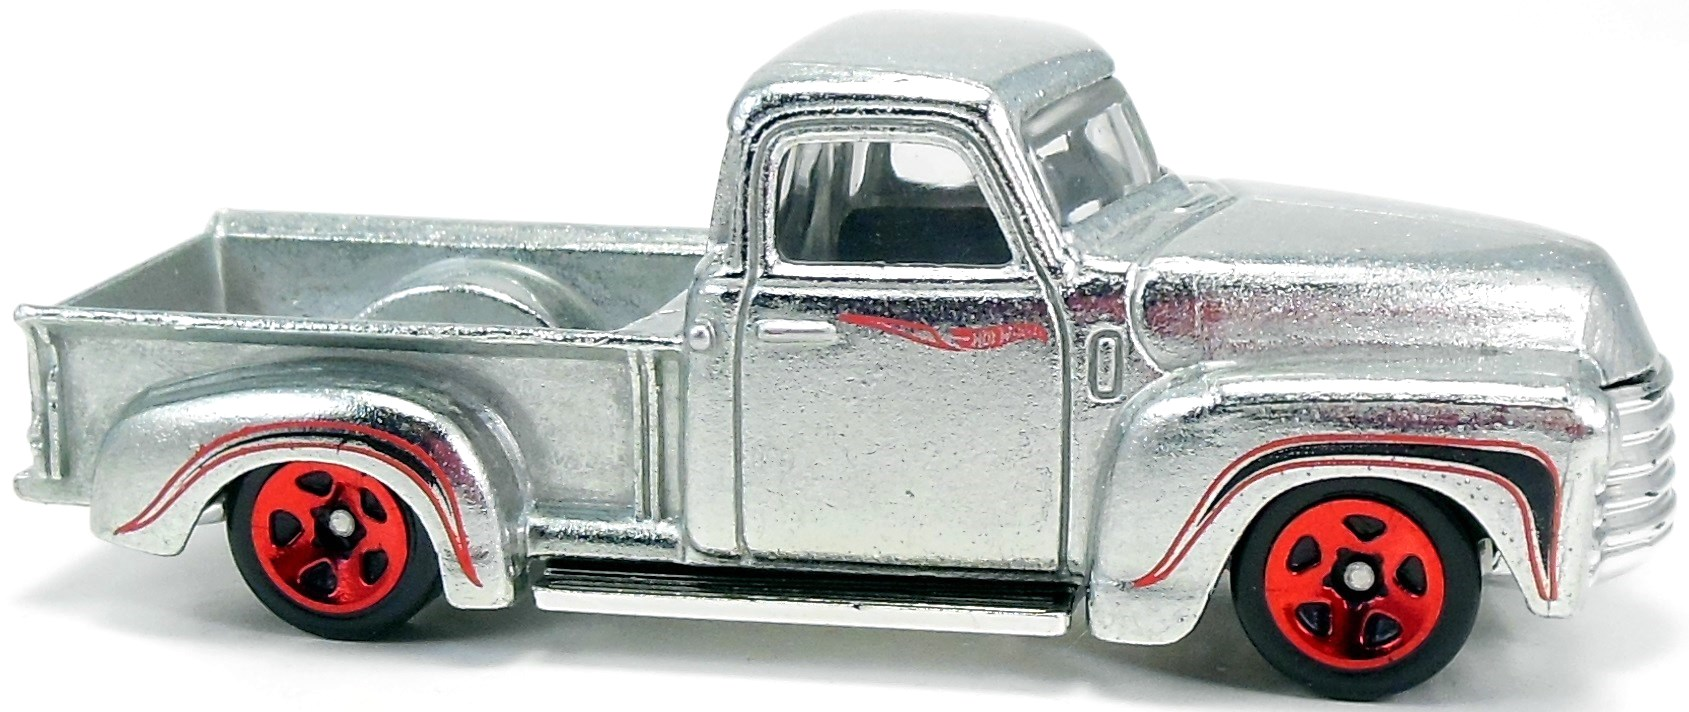 2015 Zamac Series Hot Wheels Newsletter